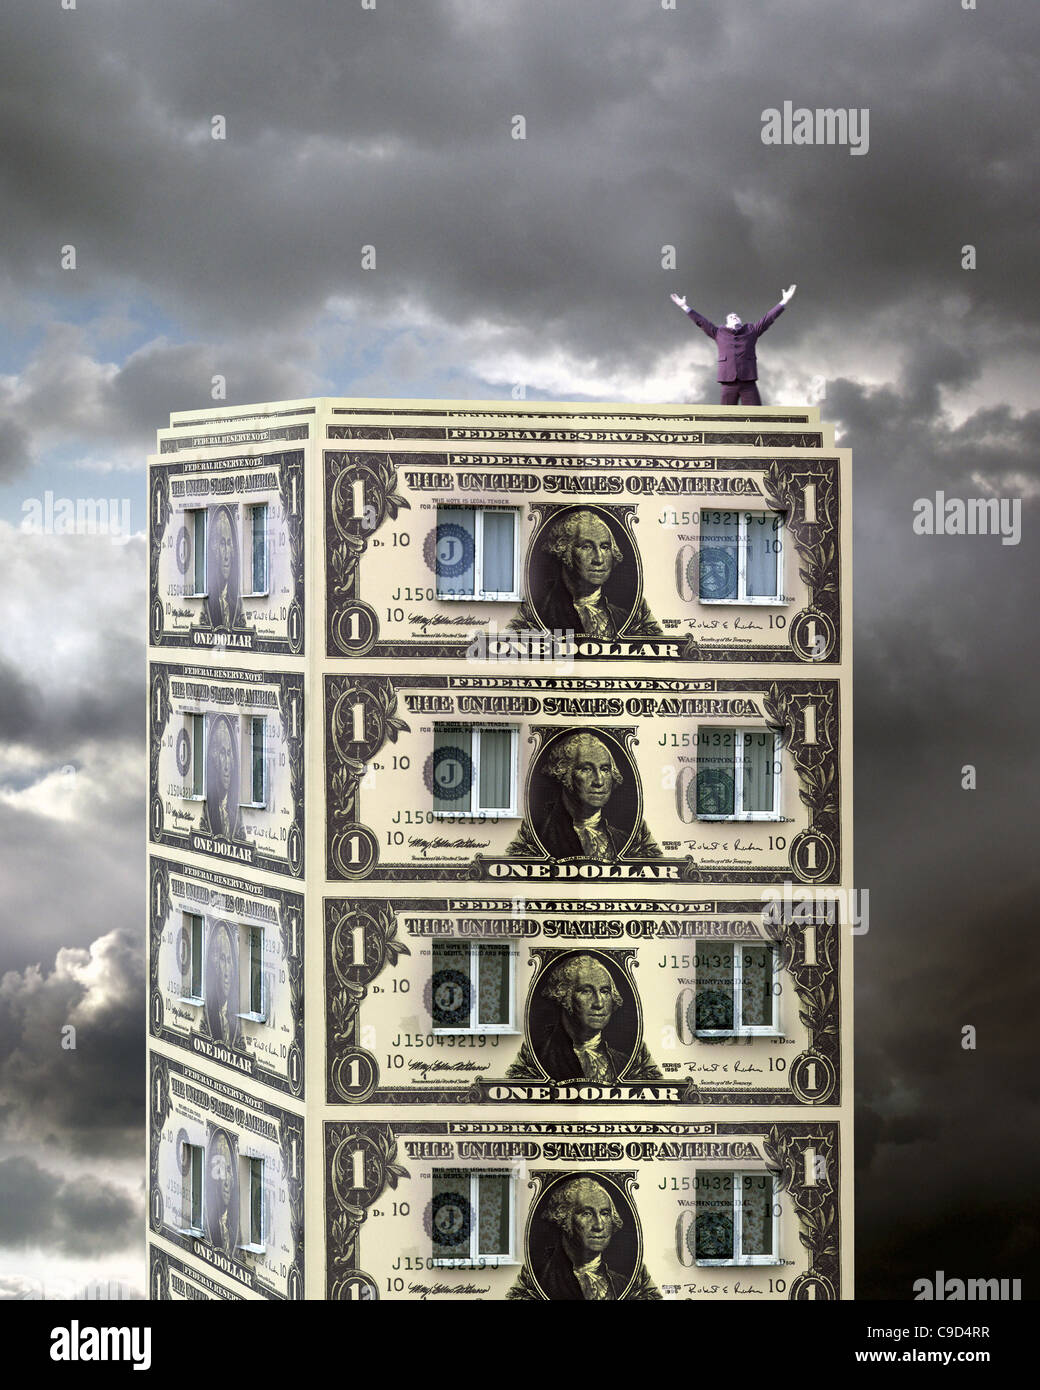 Man Standing On Top Of A Building Made From Paper Money